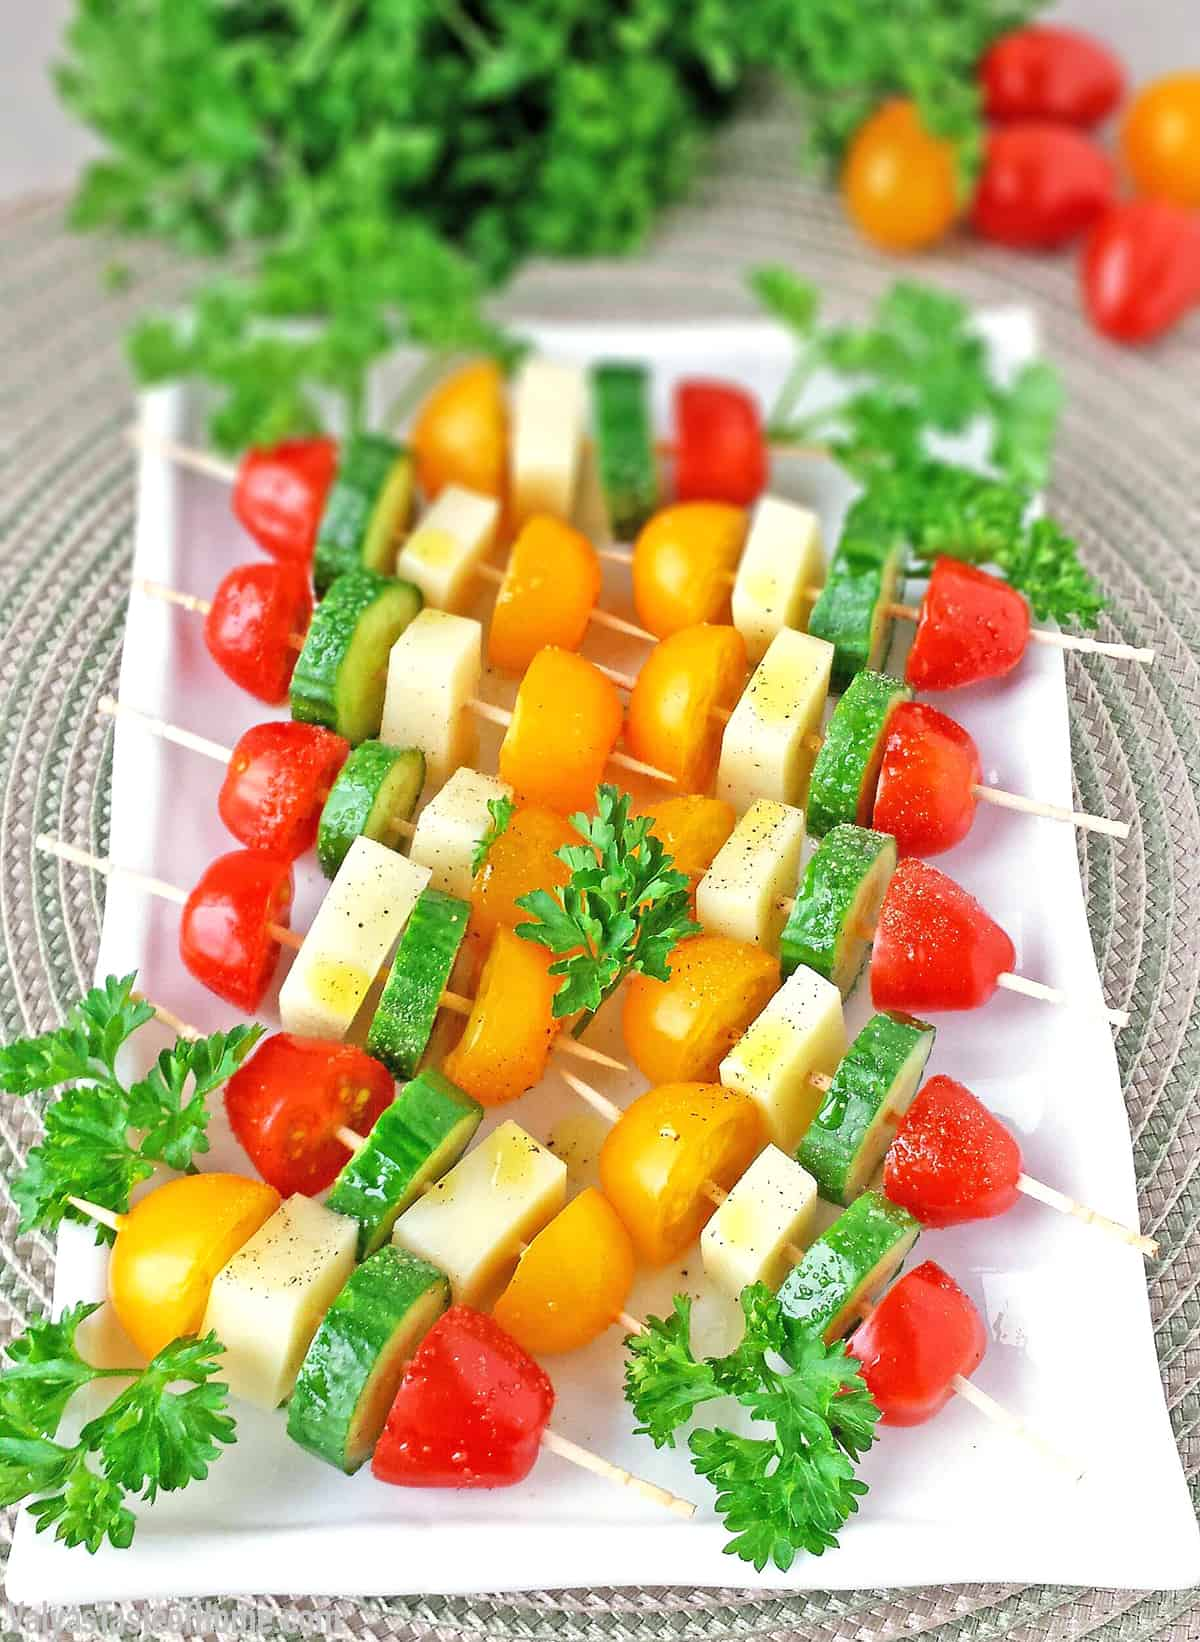 This delightful Tomato Cucumber and Mozzarella Cheese Kabob Appetizers seasoned with salt and pepper and drizzled in olive oil are so easy to make and tastes absolutely tasty.